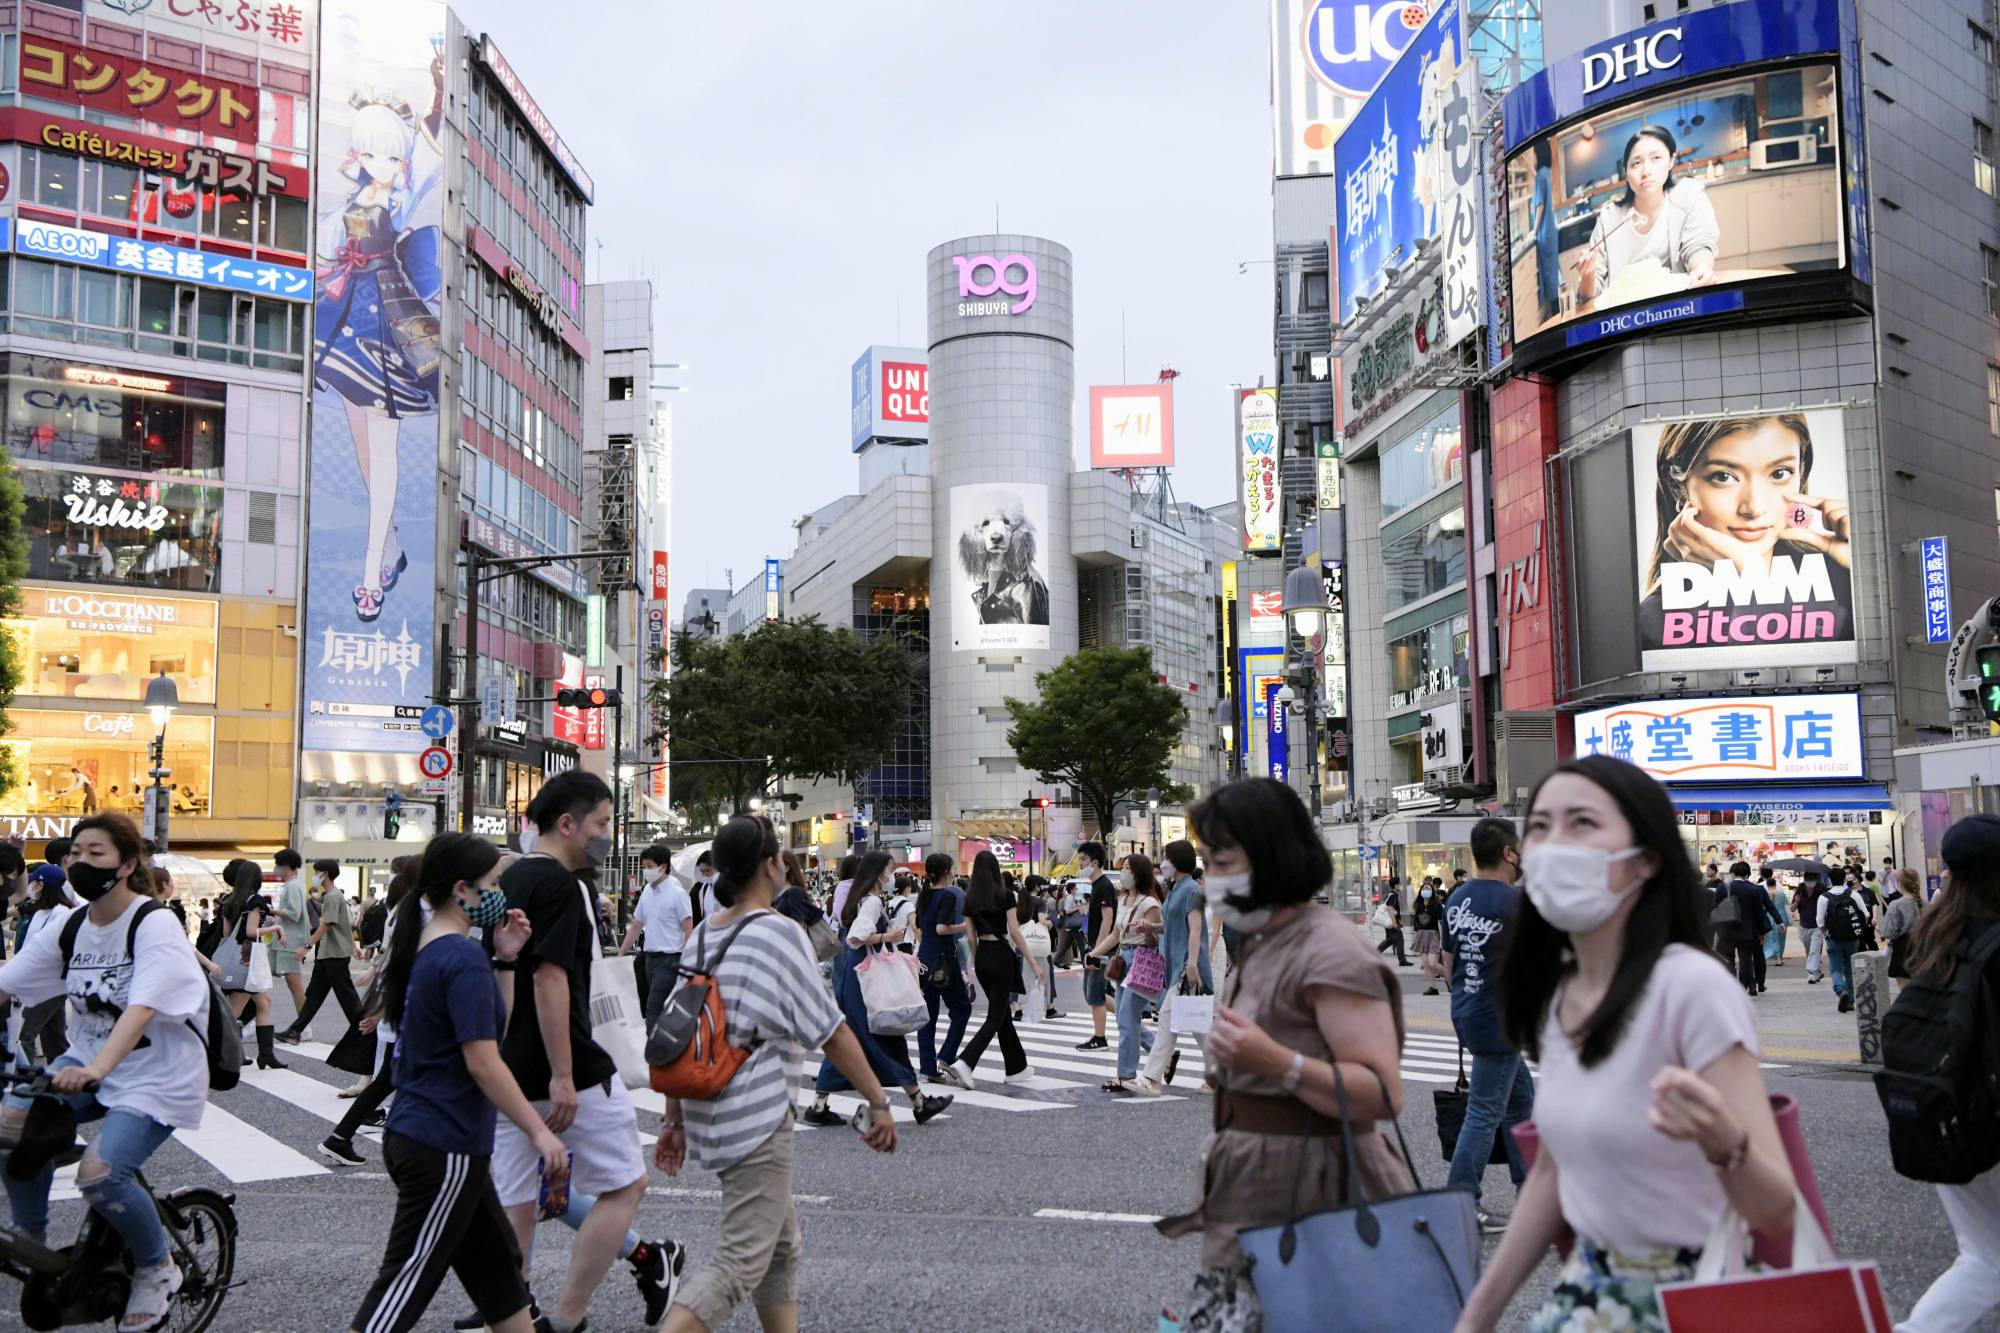 The scramble crossing in Tokyo's Shibuya district on Thursday | KYODO